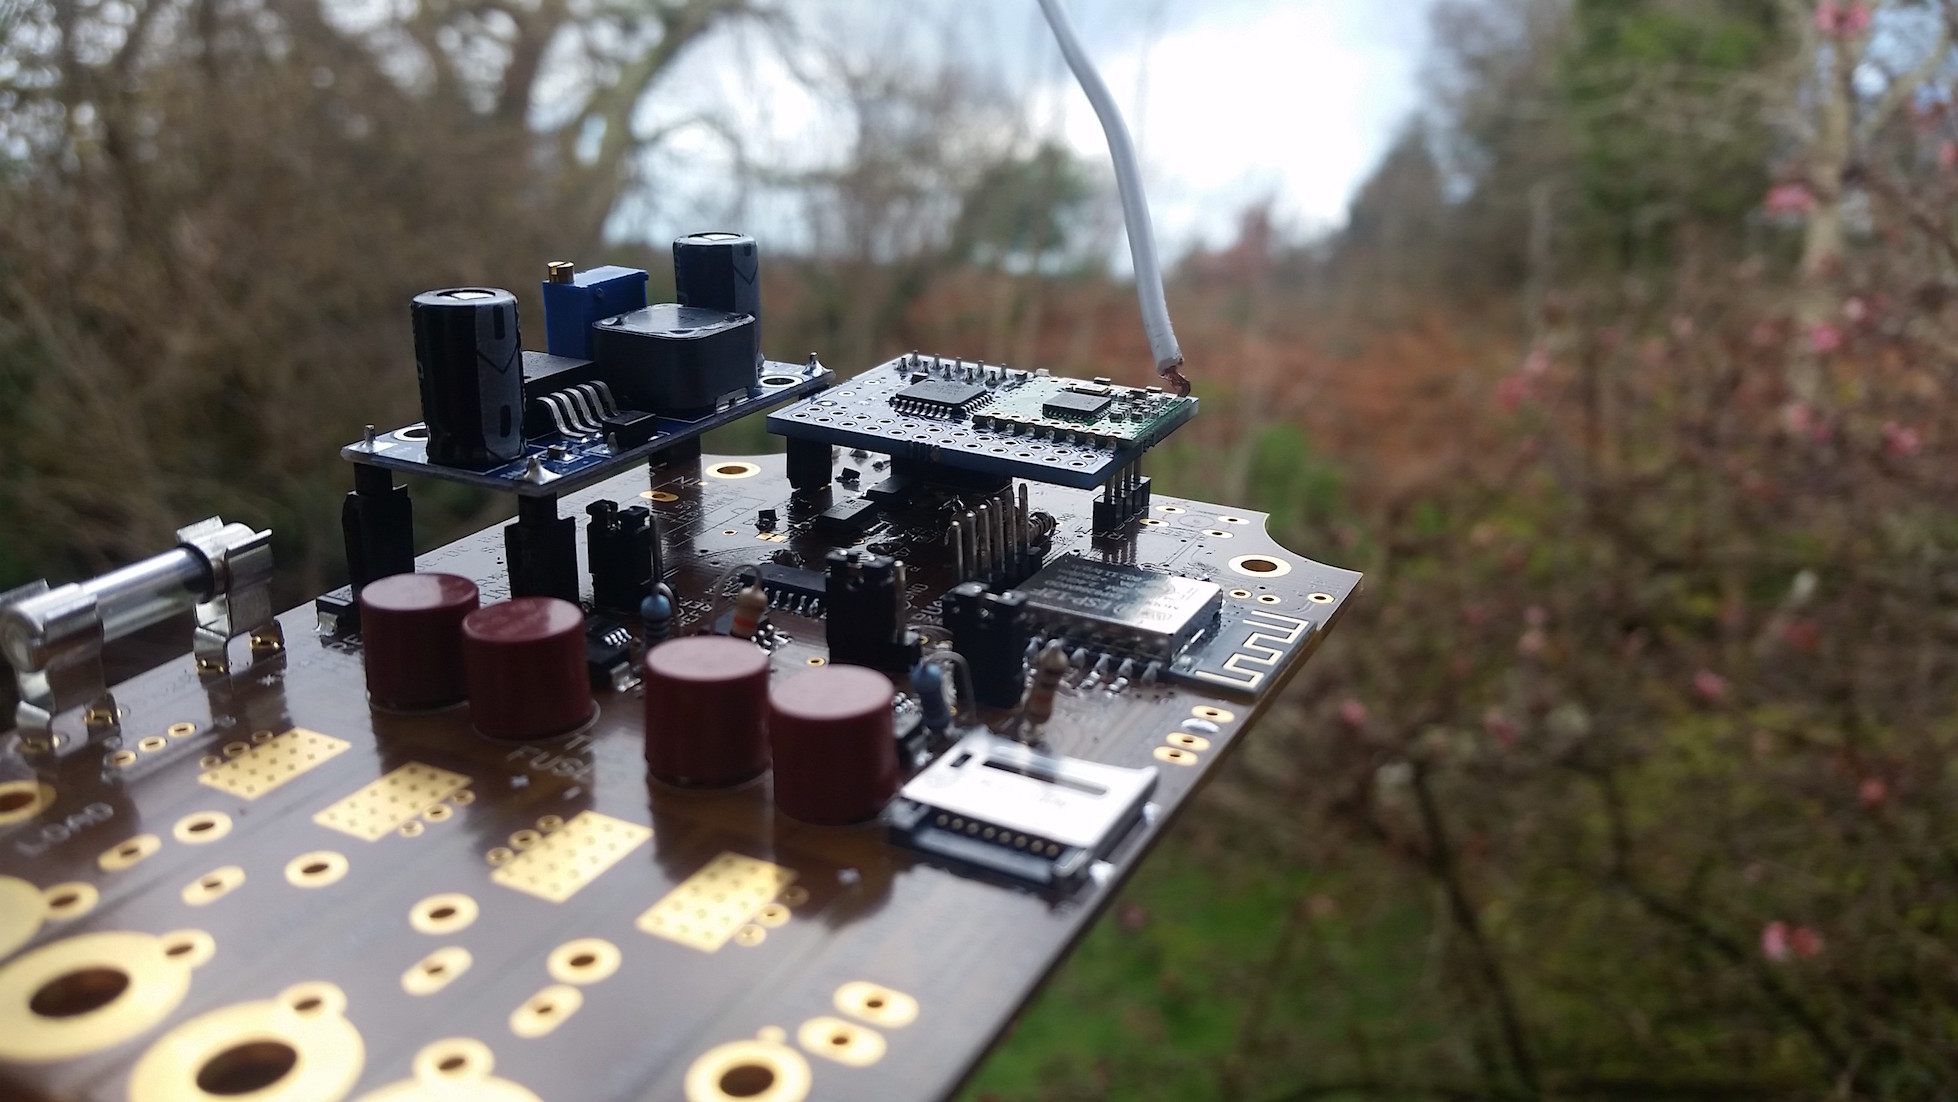 The board sets sail with a RFM69Pi module